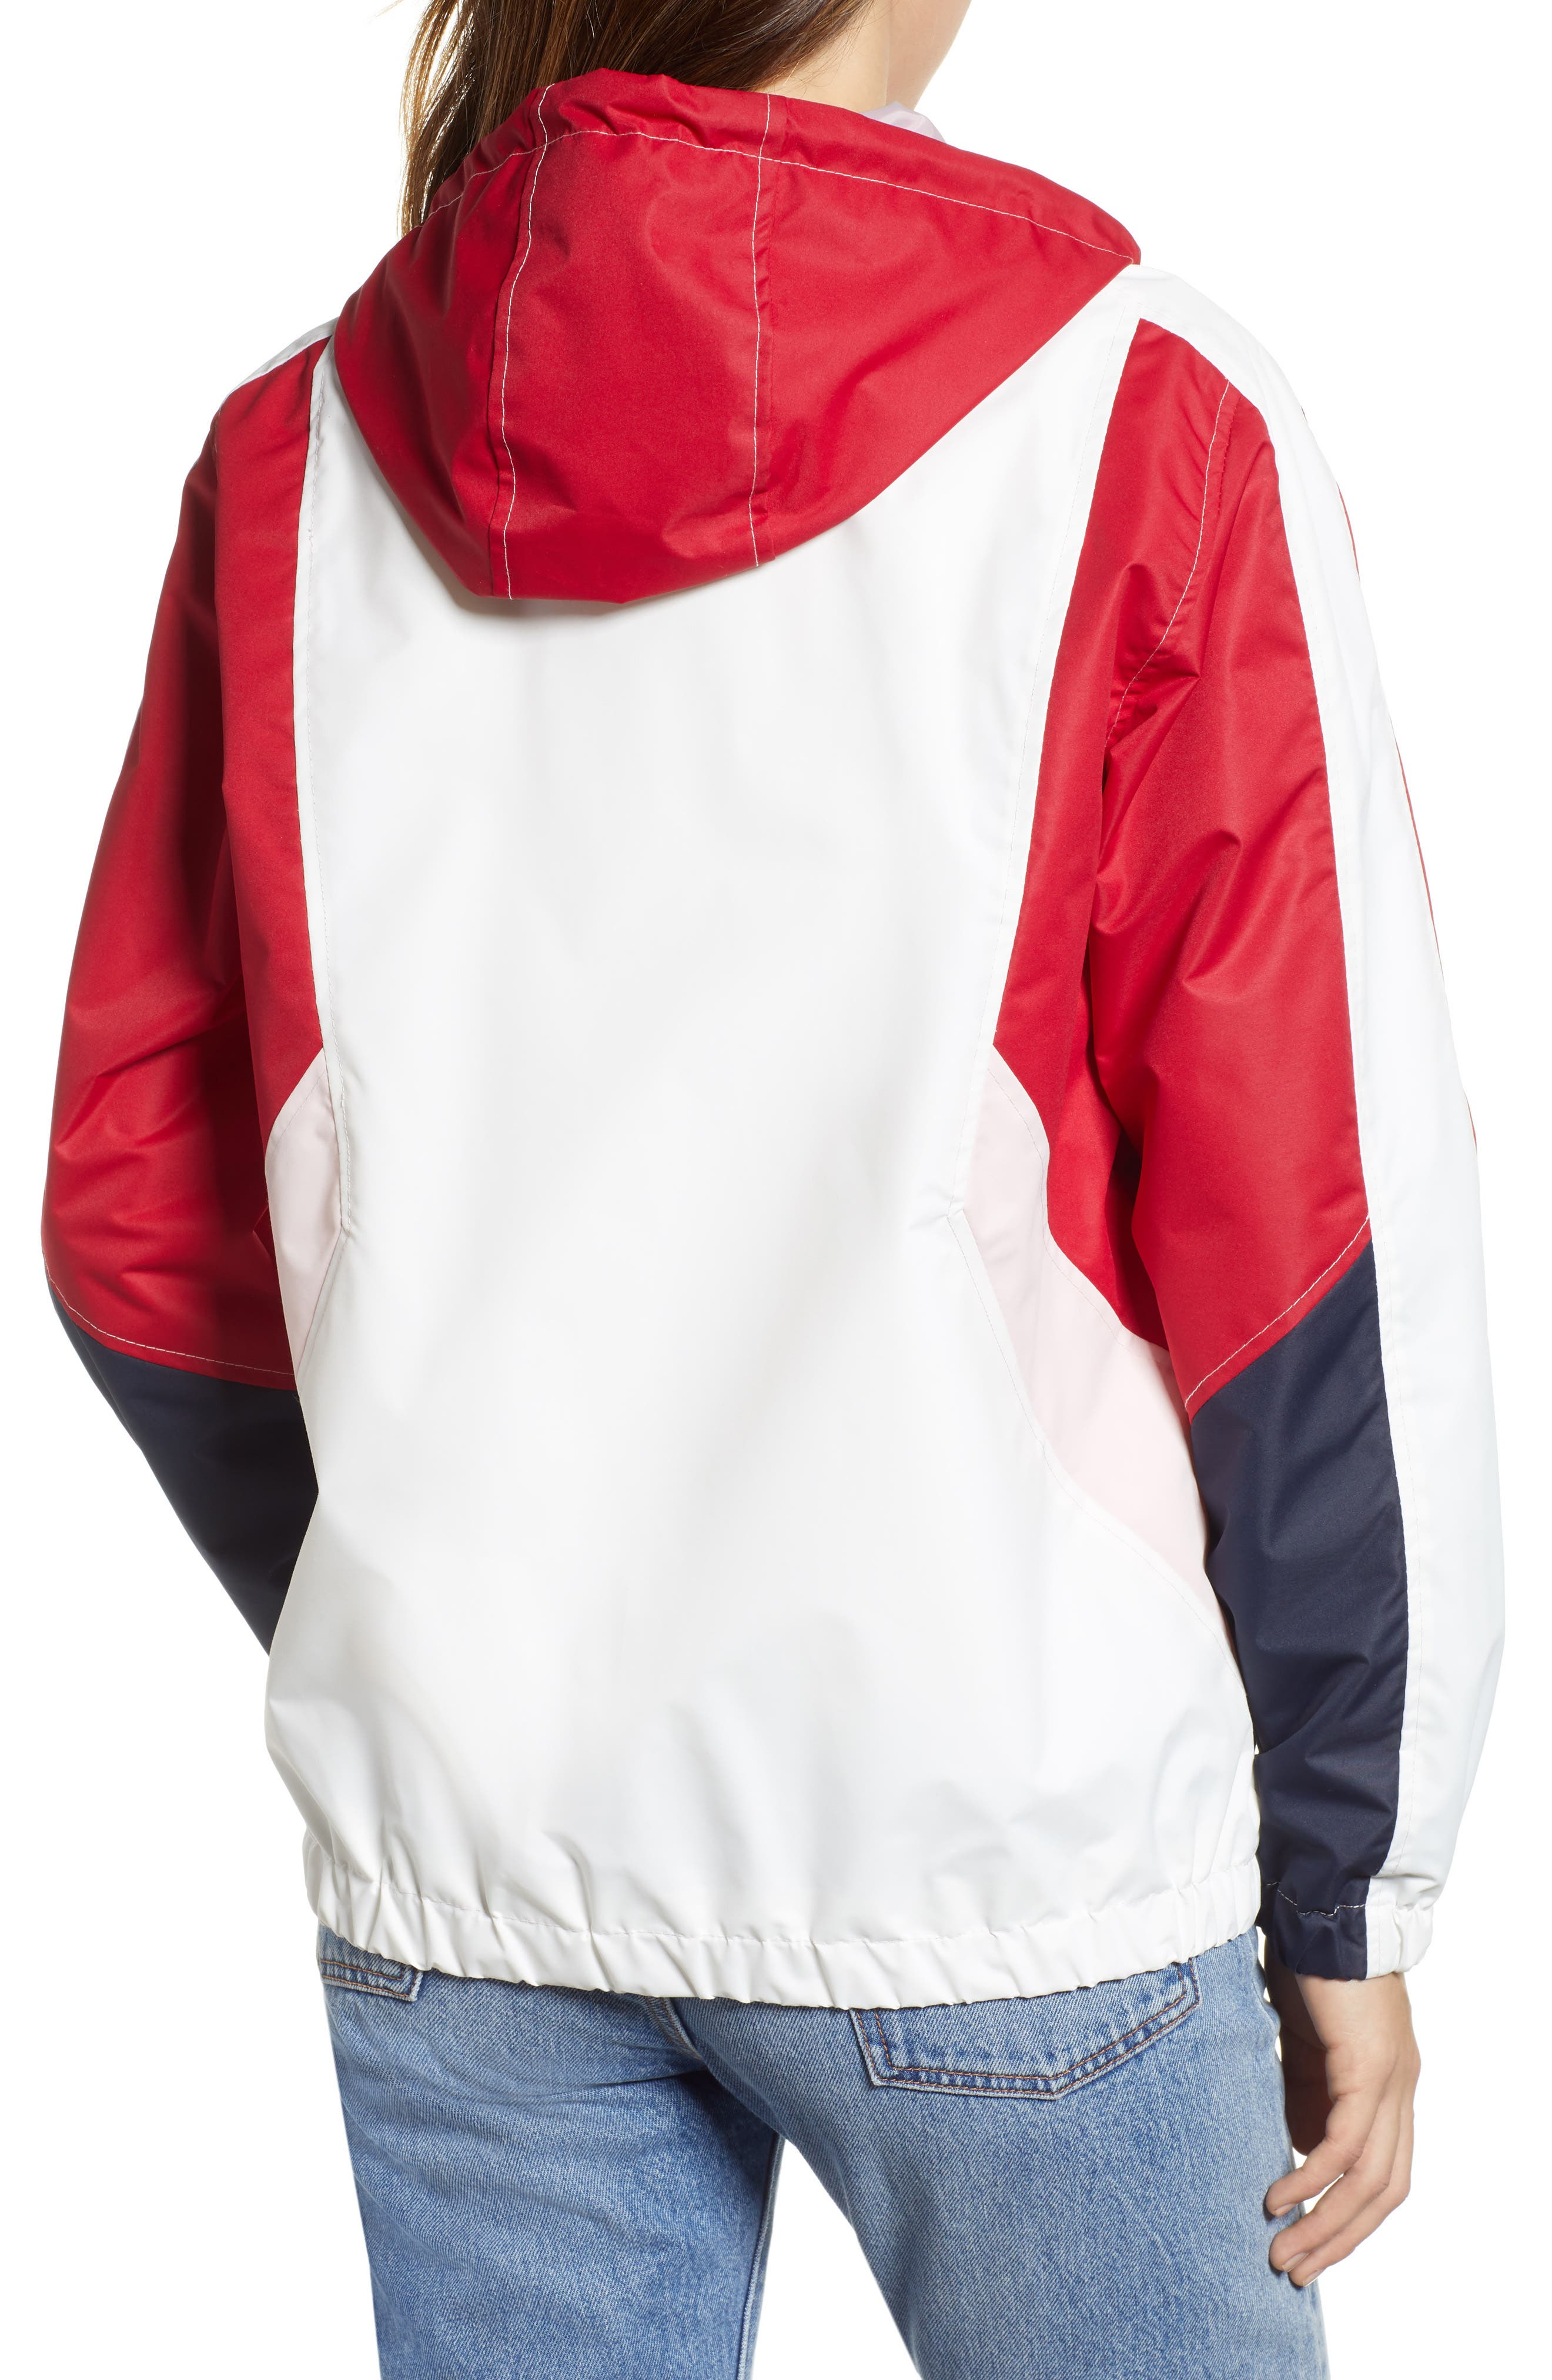 Retro Colorblock Bomber Jacket,                             Alternate thumbnail 2, color,                             PINK-RED